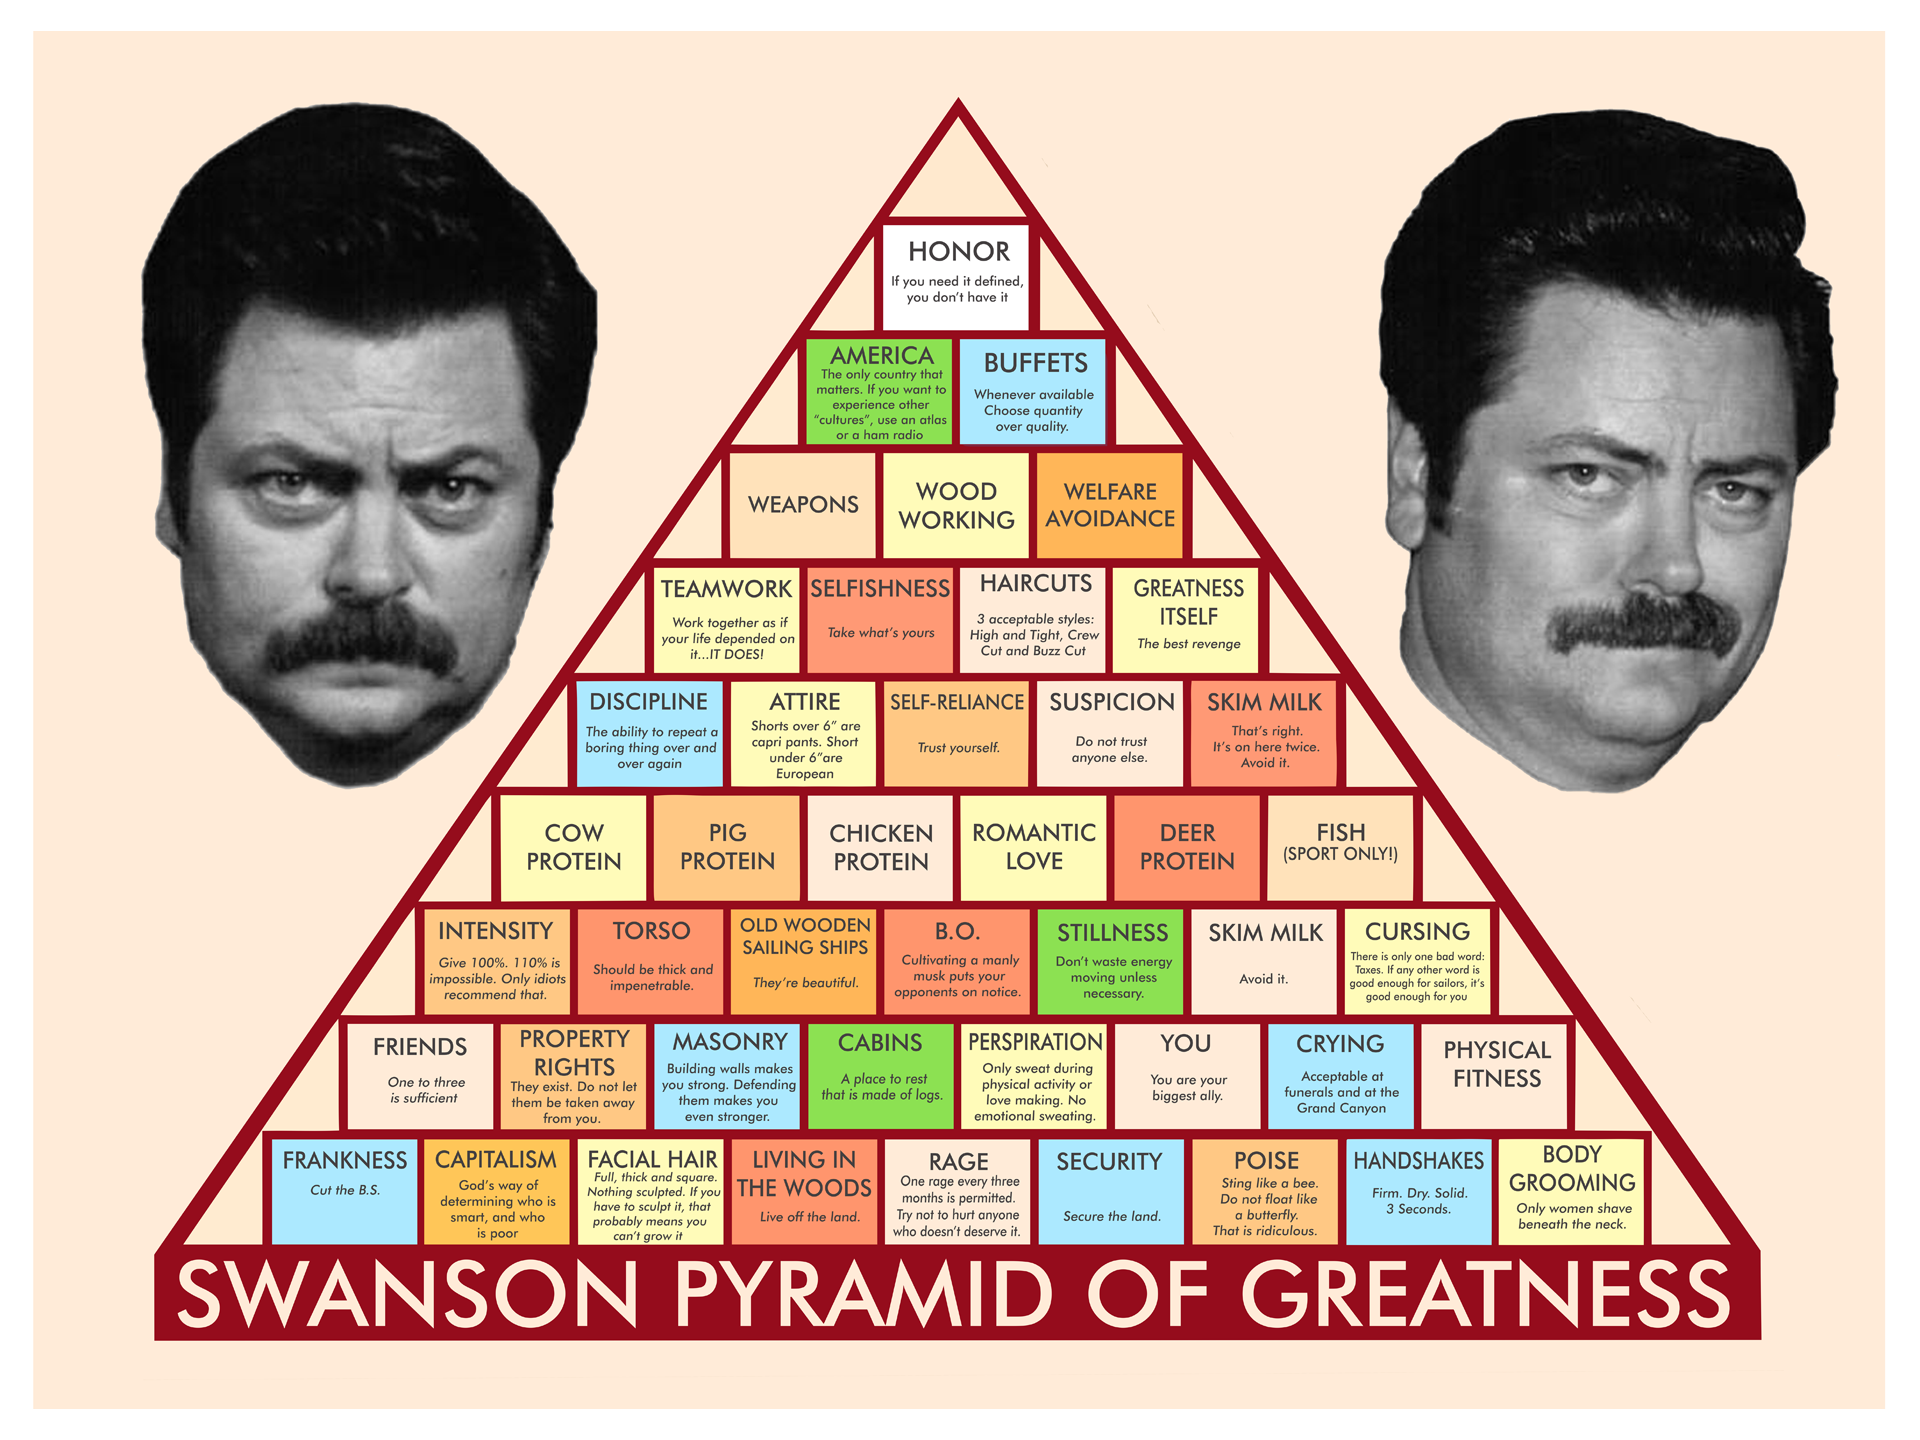 picture relating to Ron Swanson Pyramid of Greatness Printable Version named PRINTABLE Ron Swanson Pyramid Of Greatness retain the services of this as a